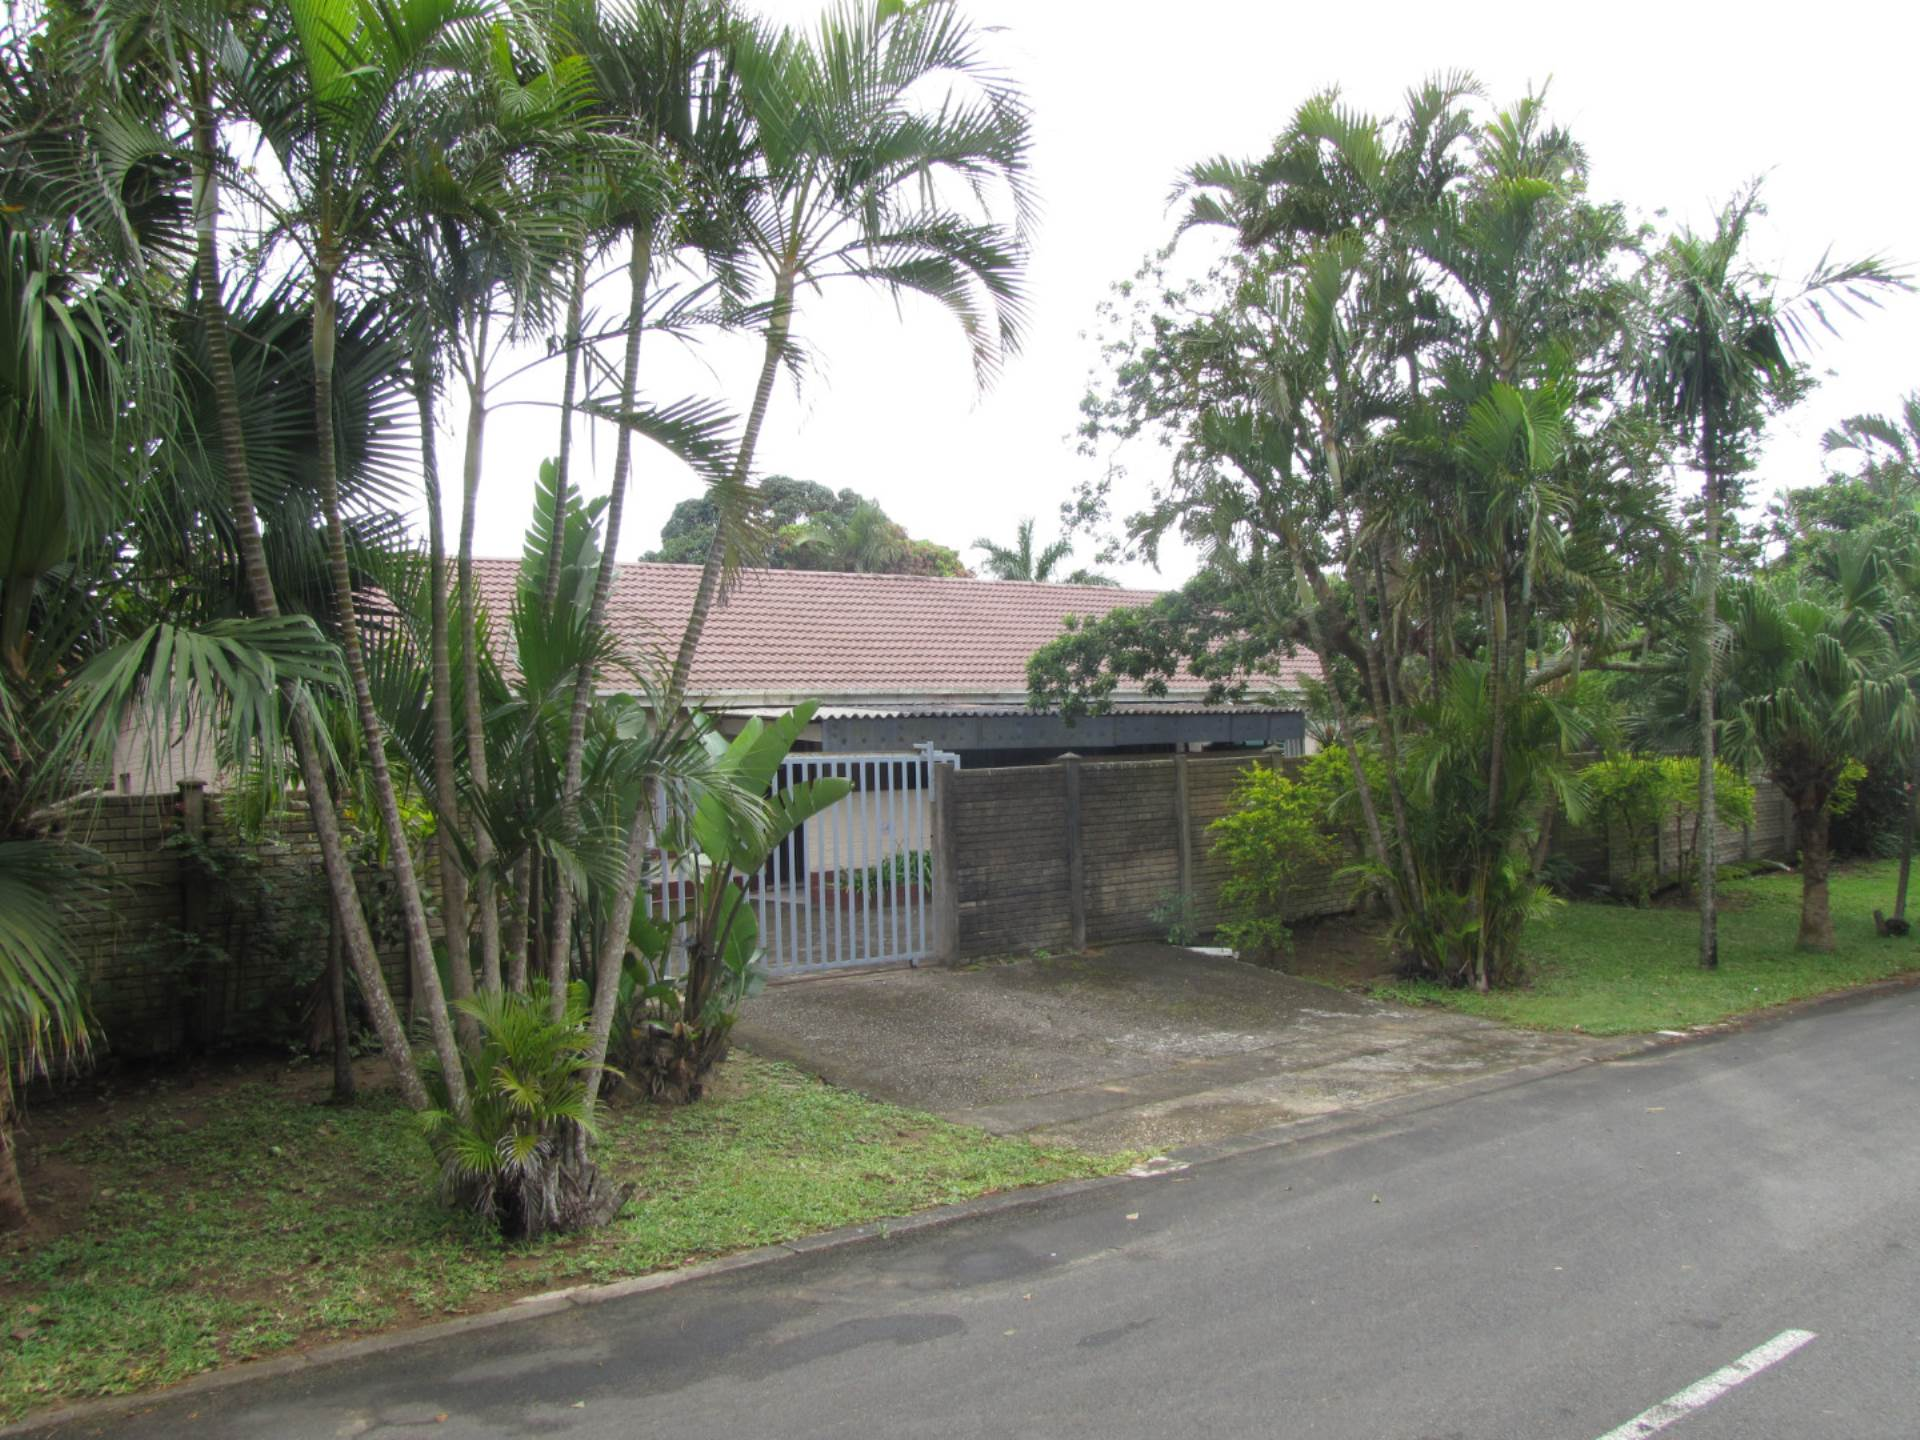 2 BedroomHouse For Sale In St Lucia